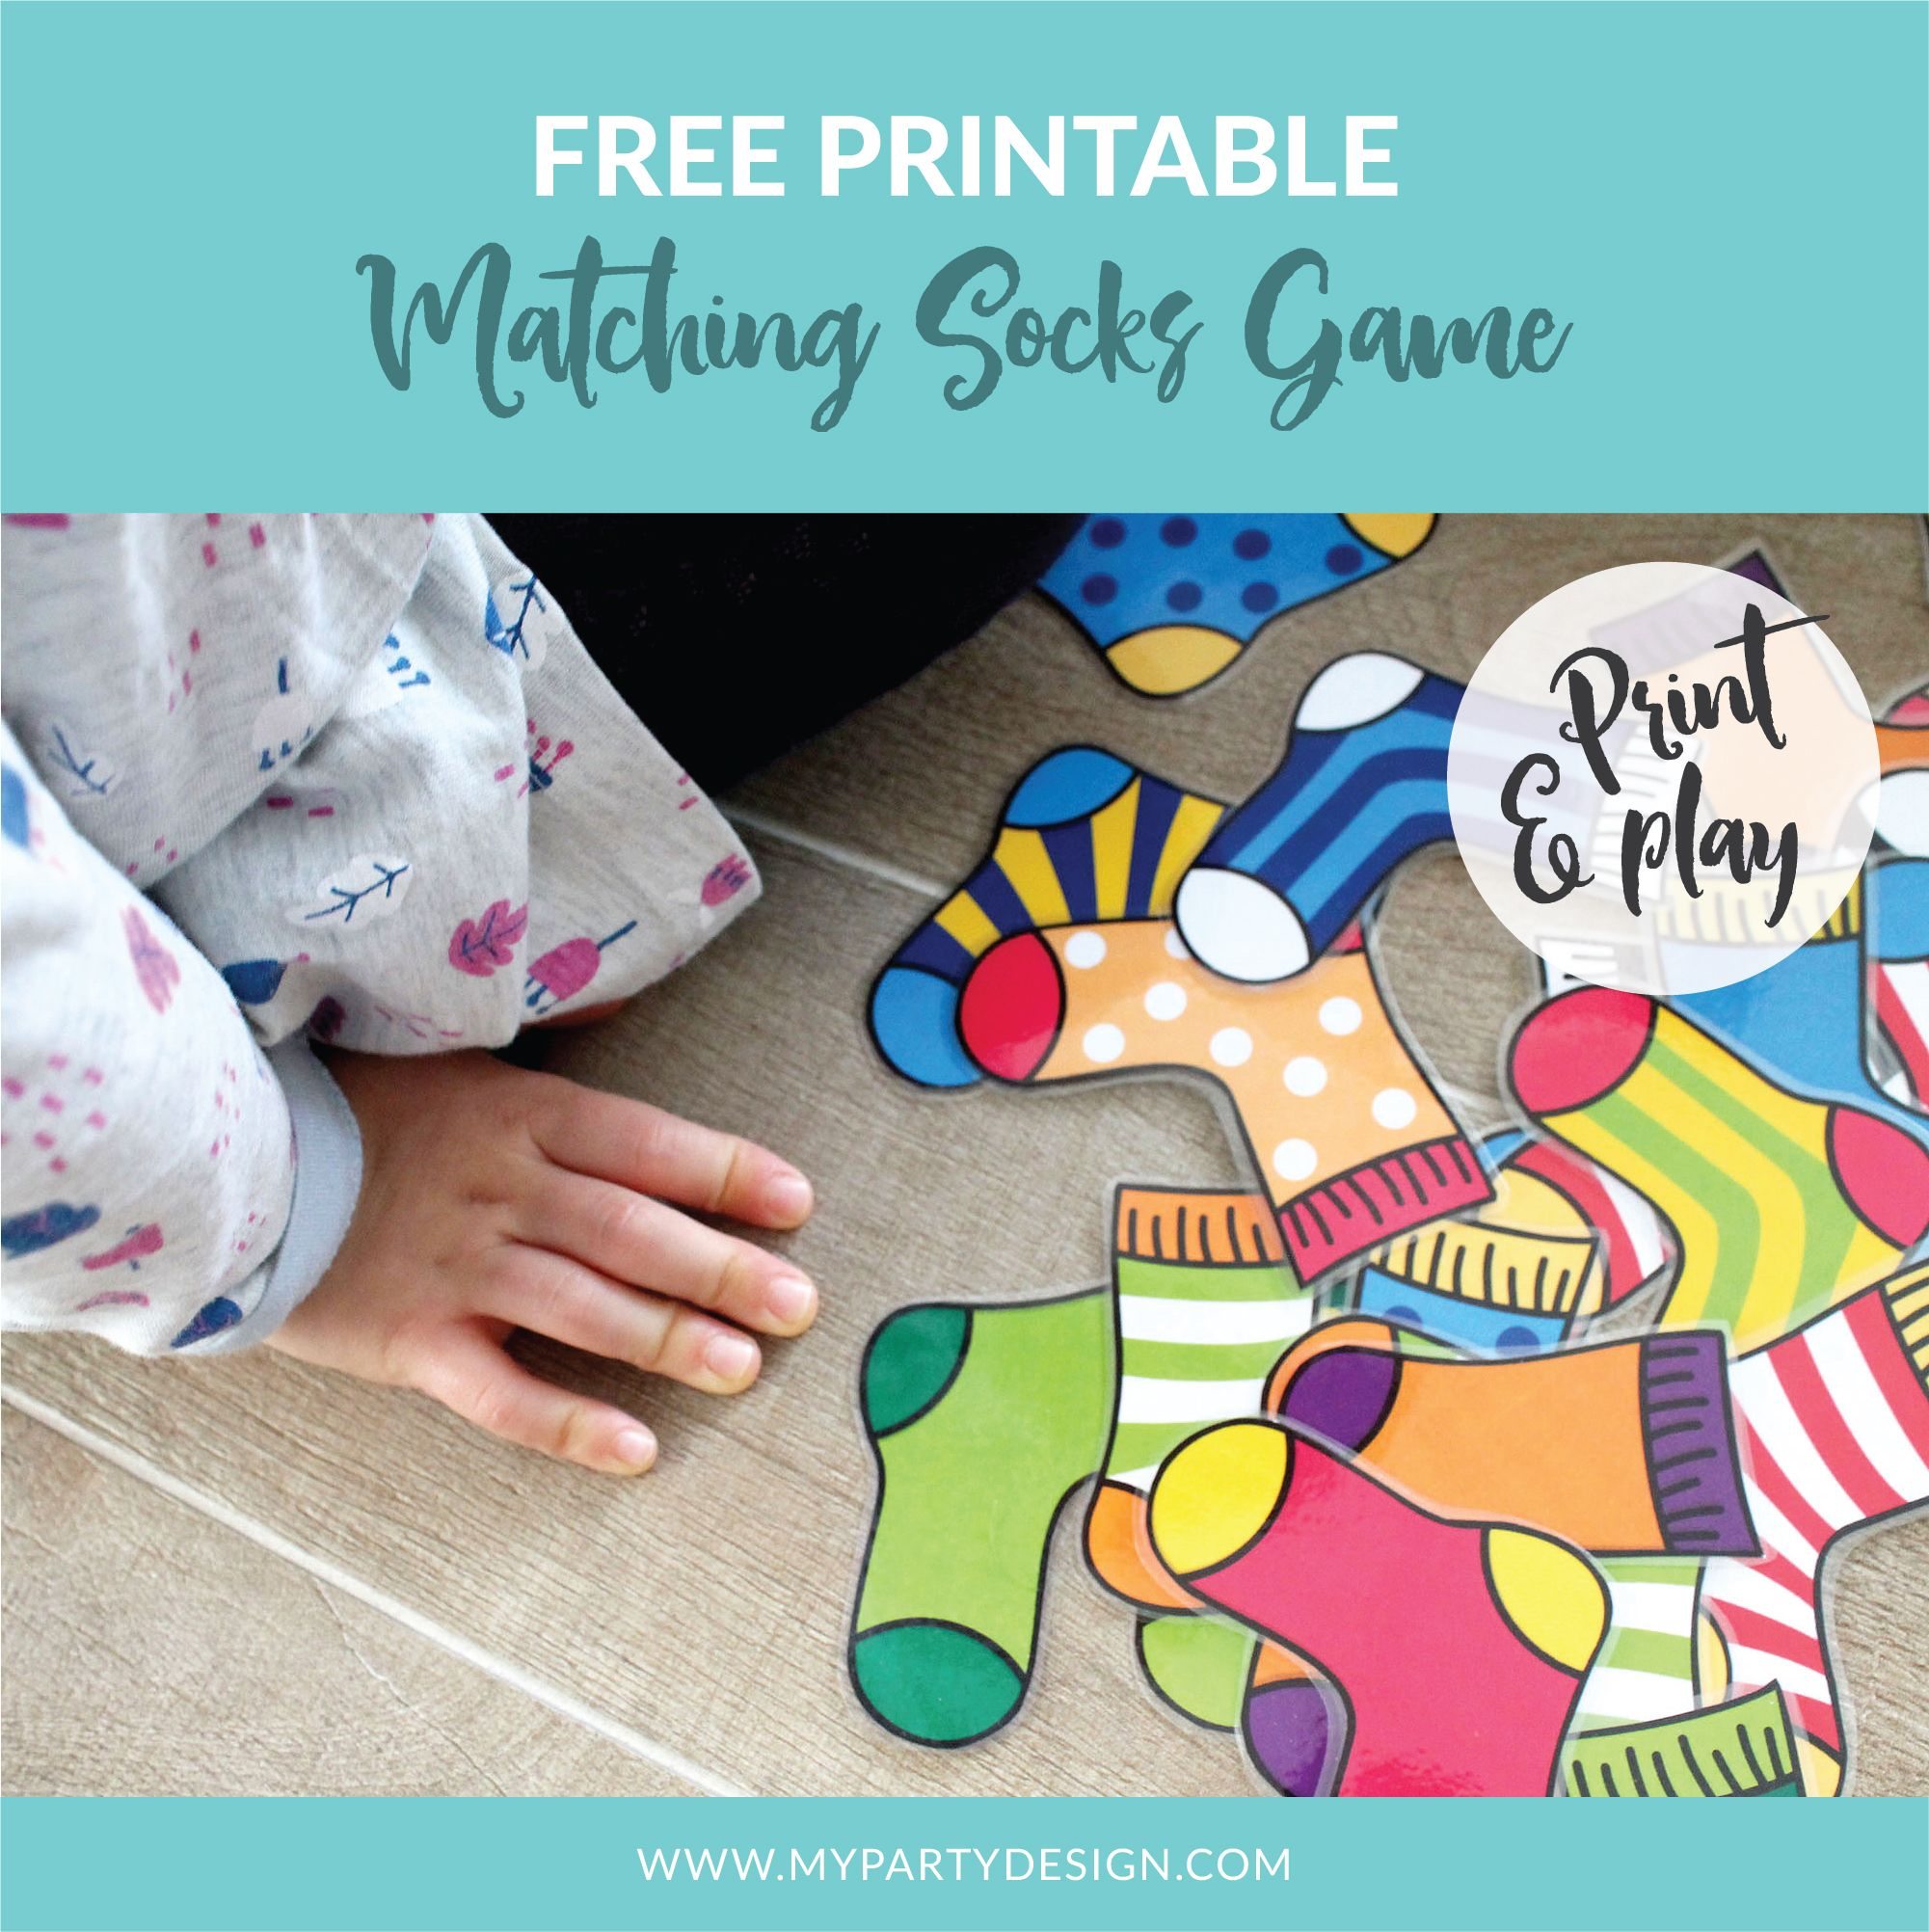 Free Printable Matching Socks Game